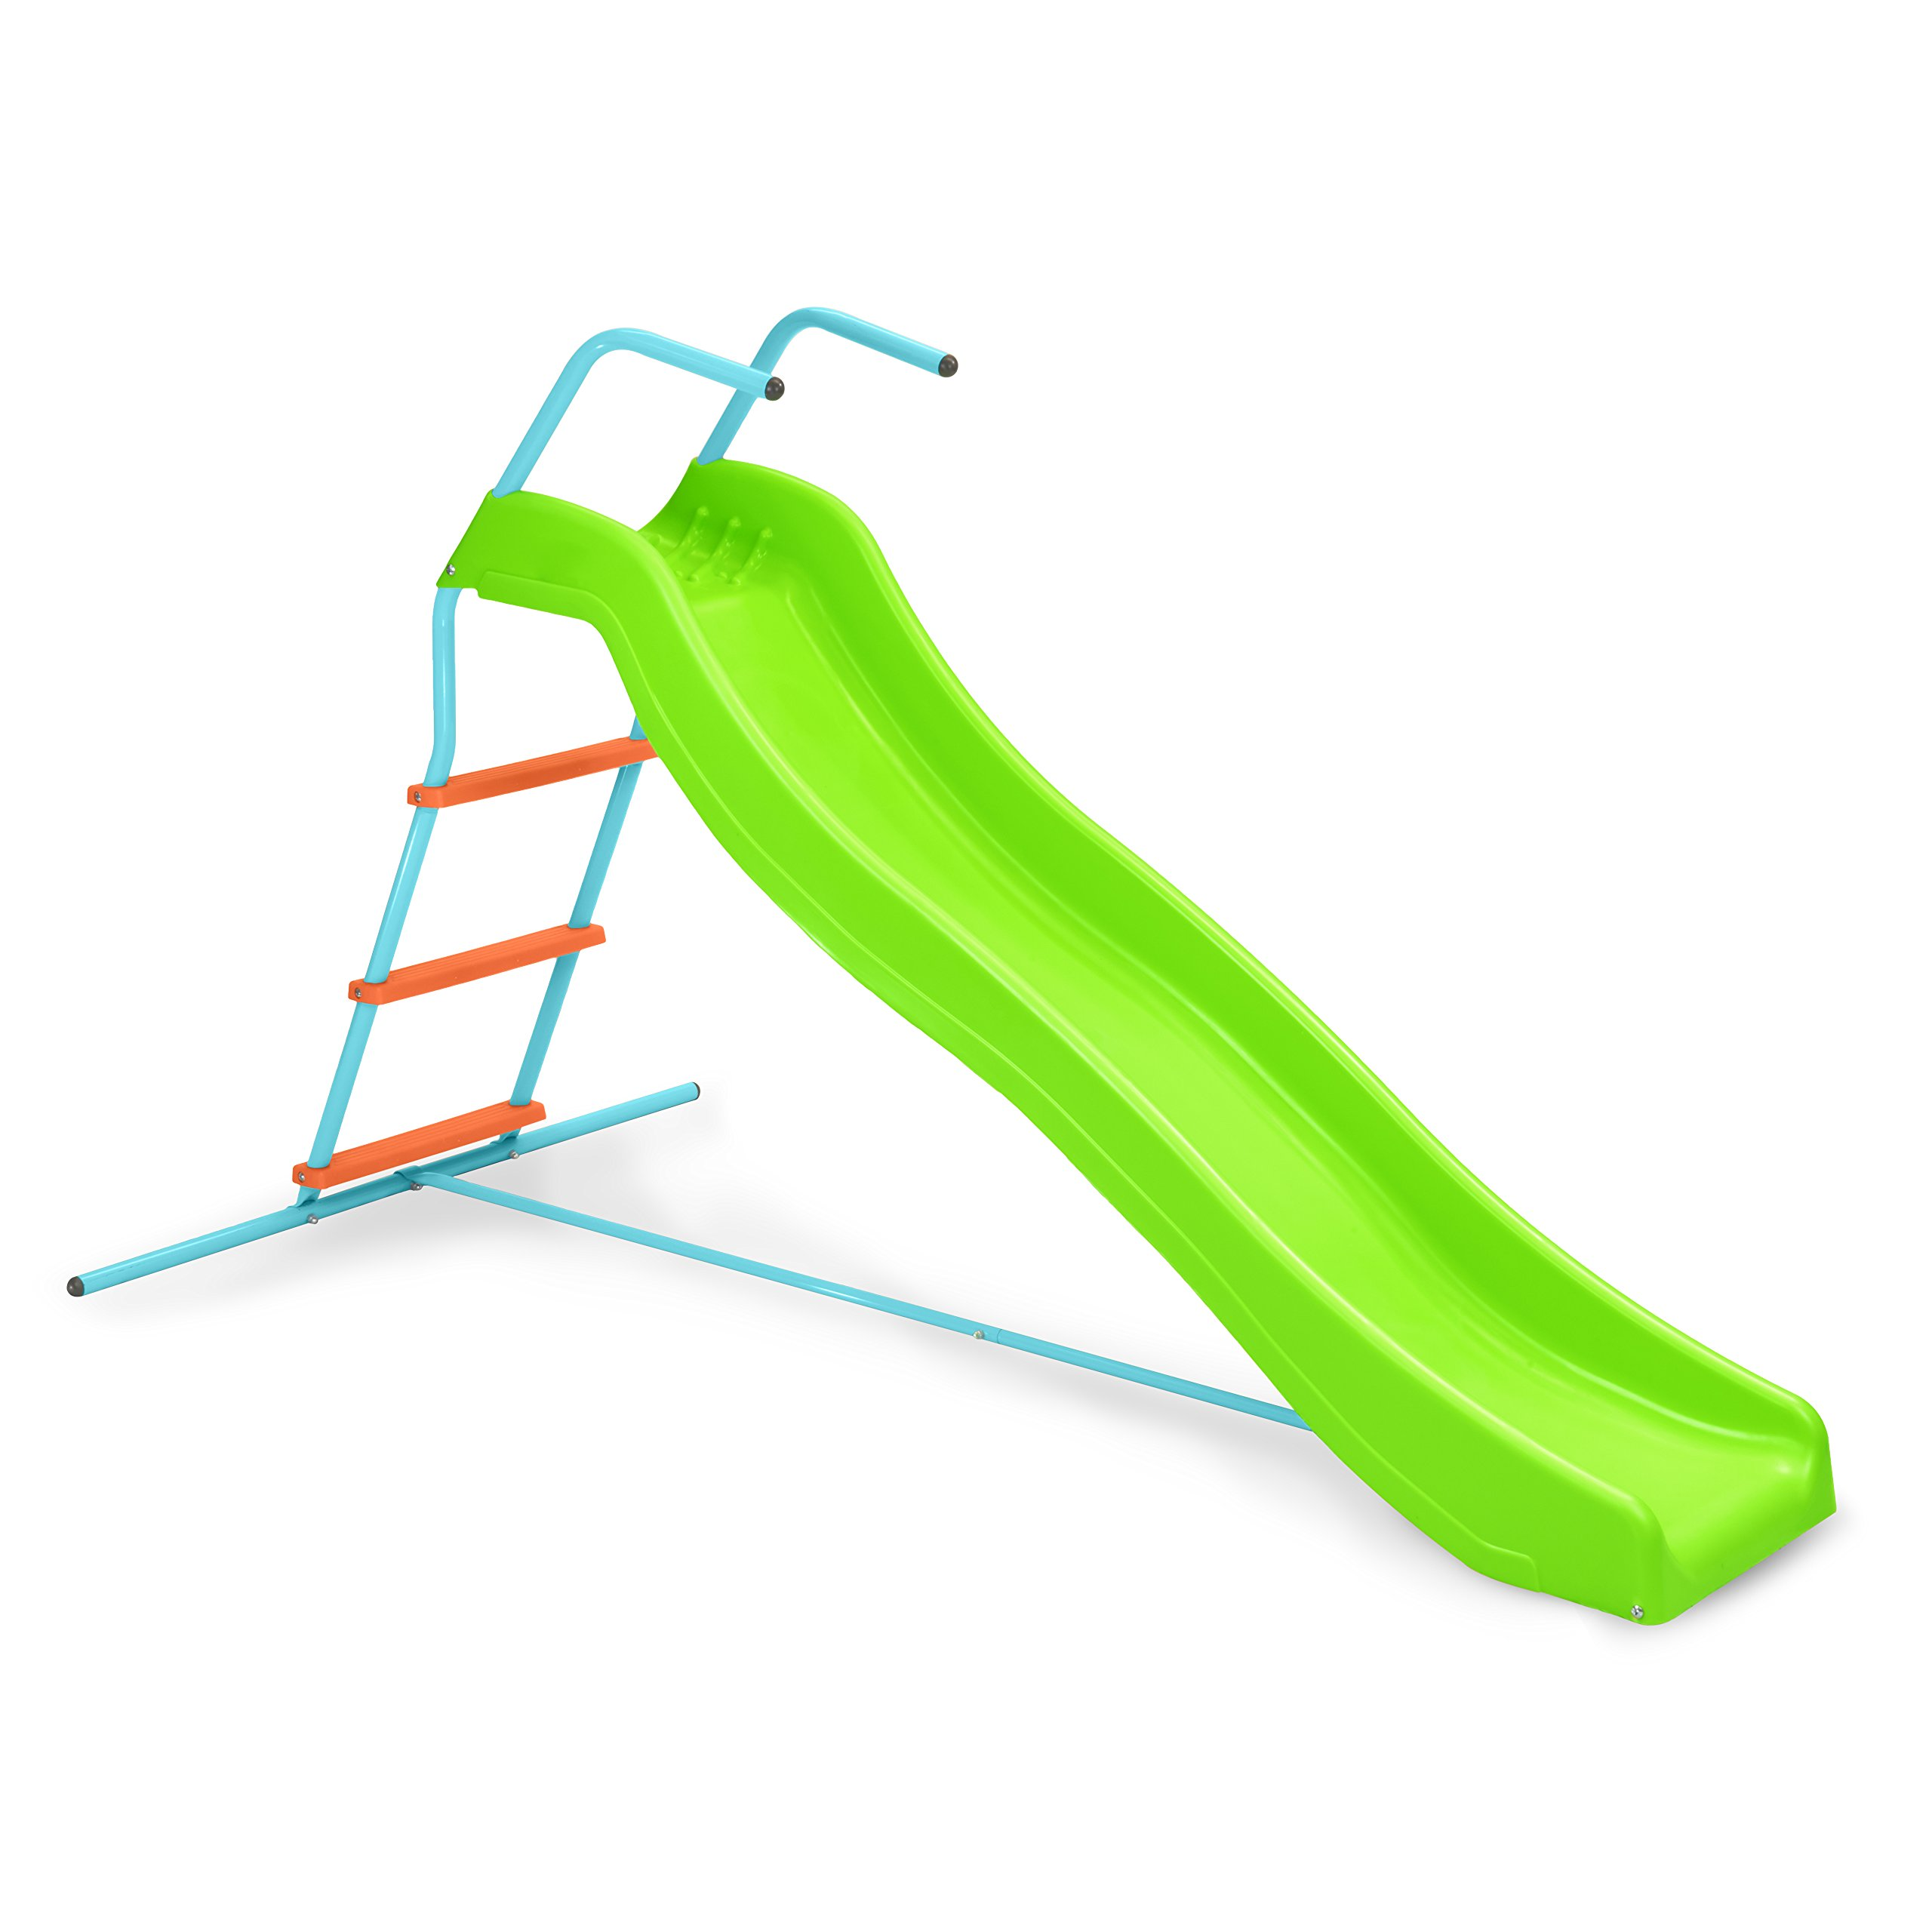 Pure Fun Home Playground Equipment: 6' Indoor/Outdoor Wavy Slide, Youth Ages 4 to 10